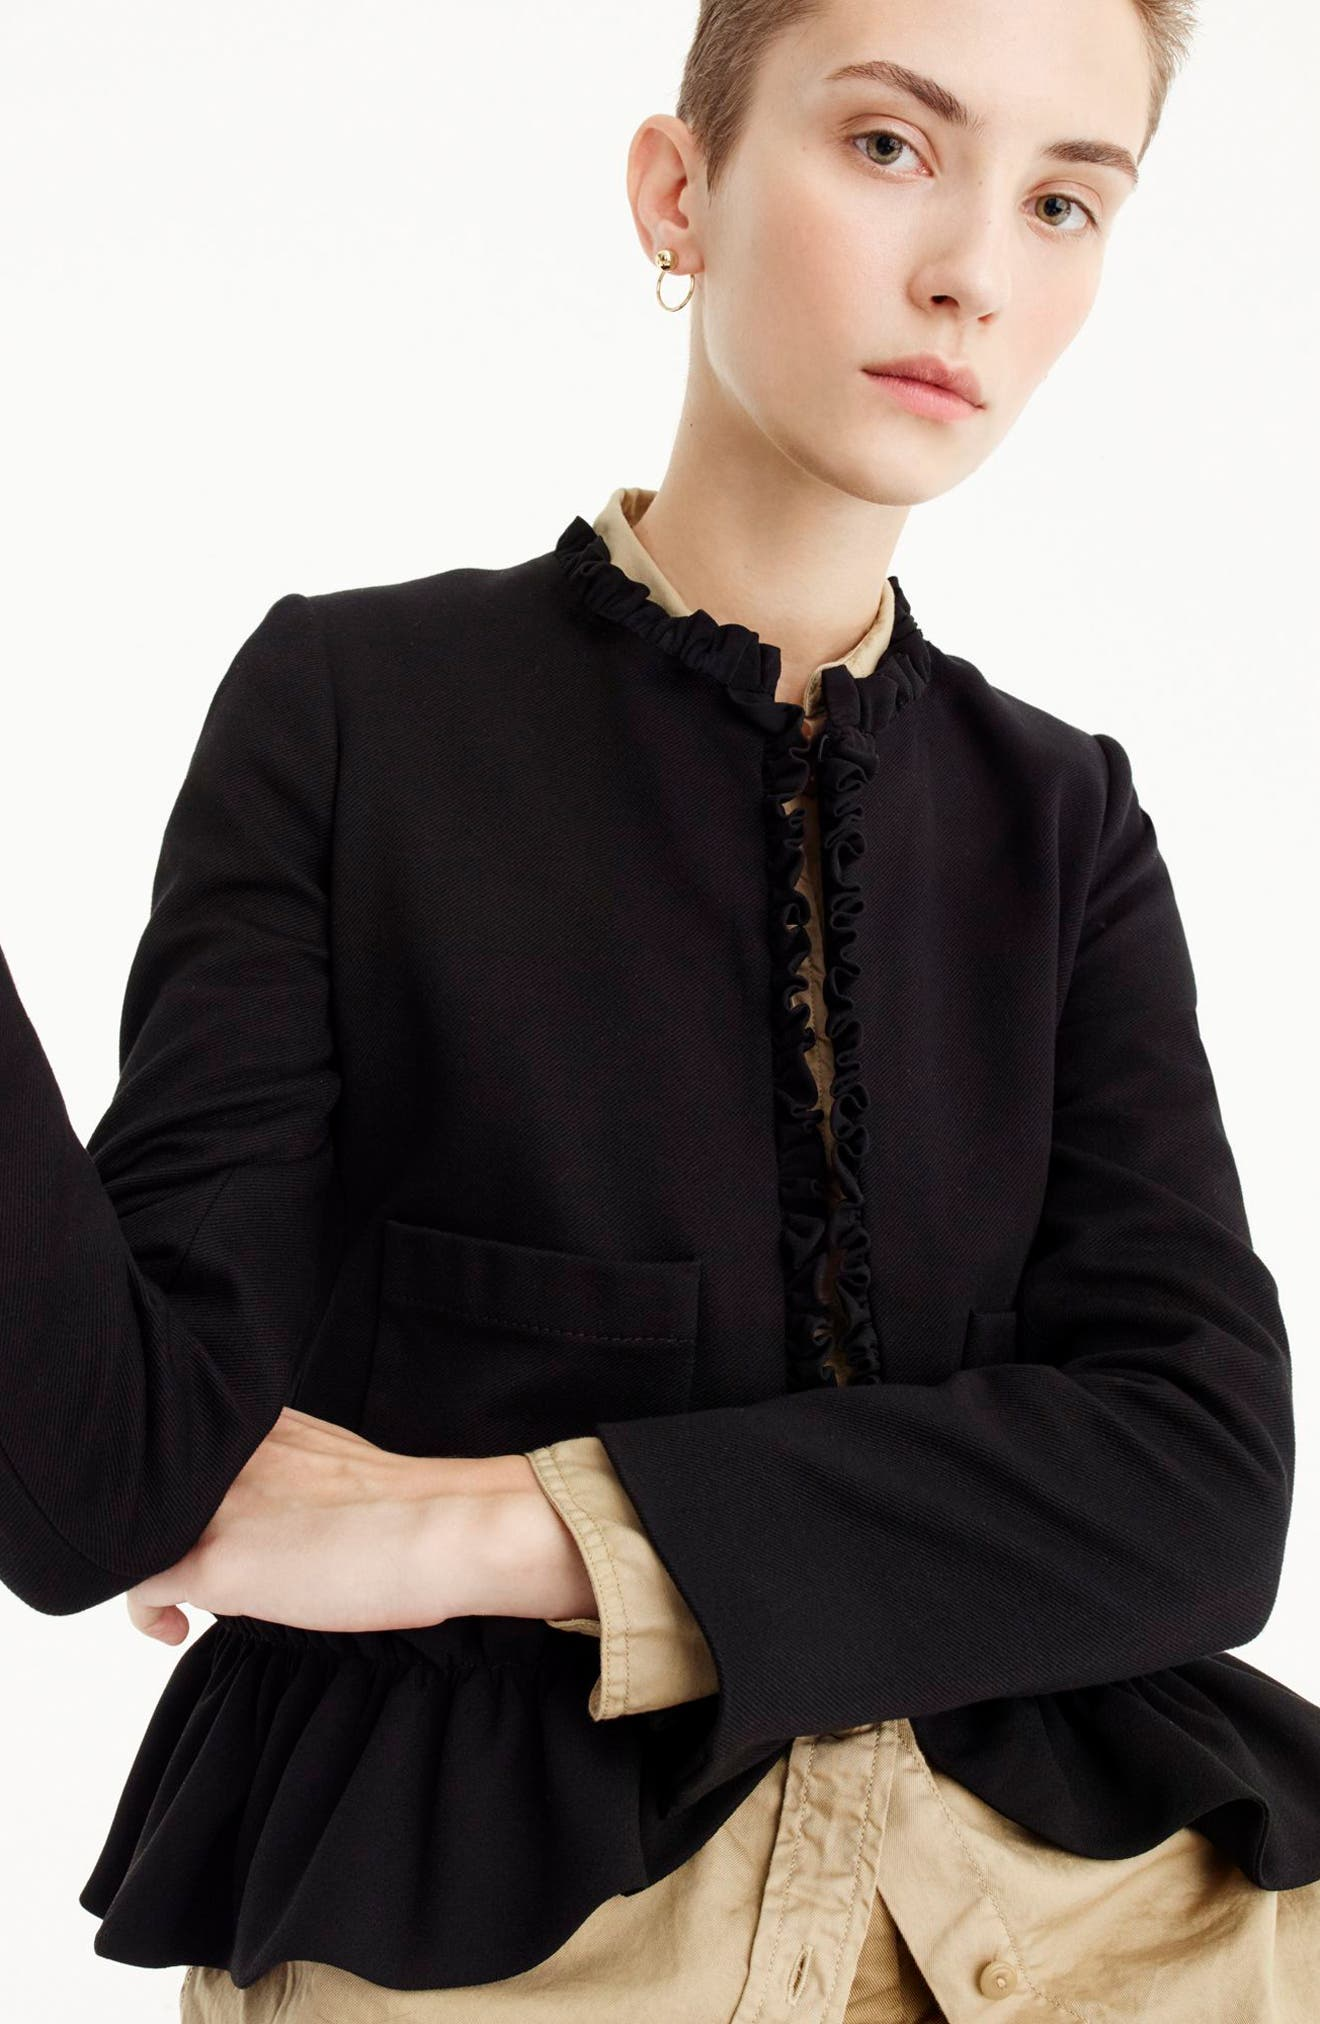 J.Crew The Going Out Blazer with Ruffles